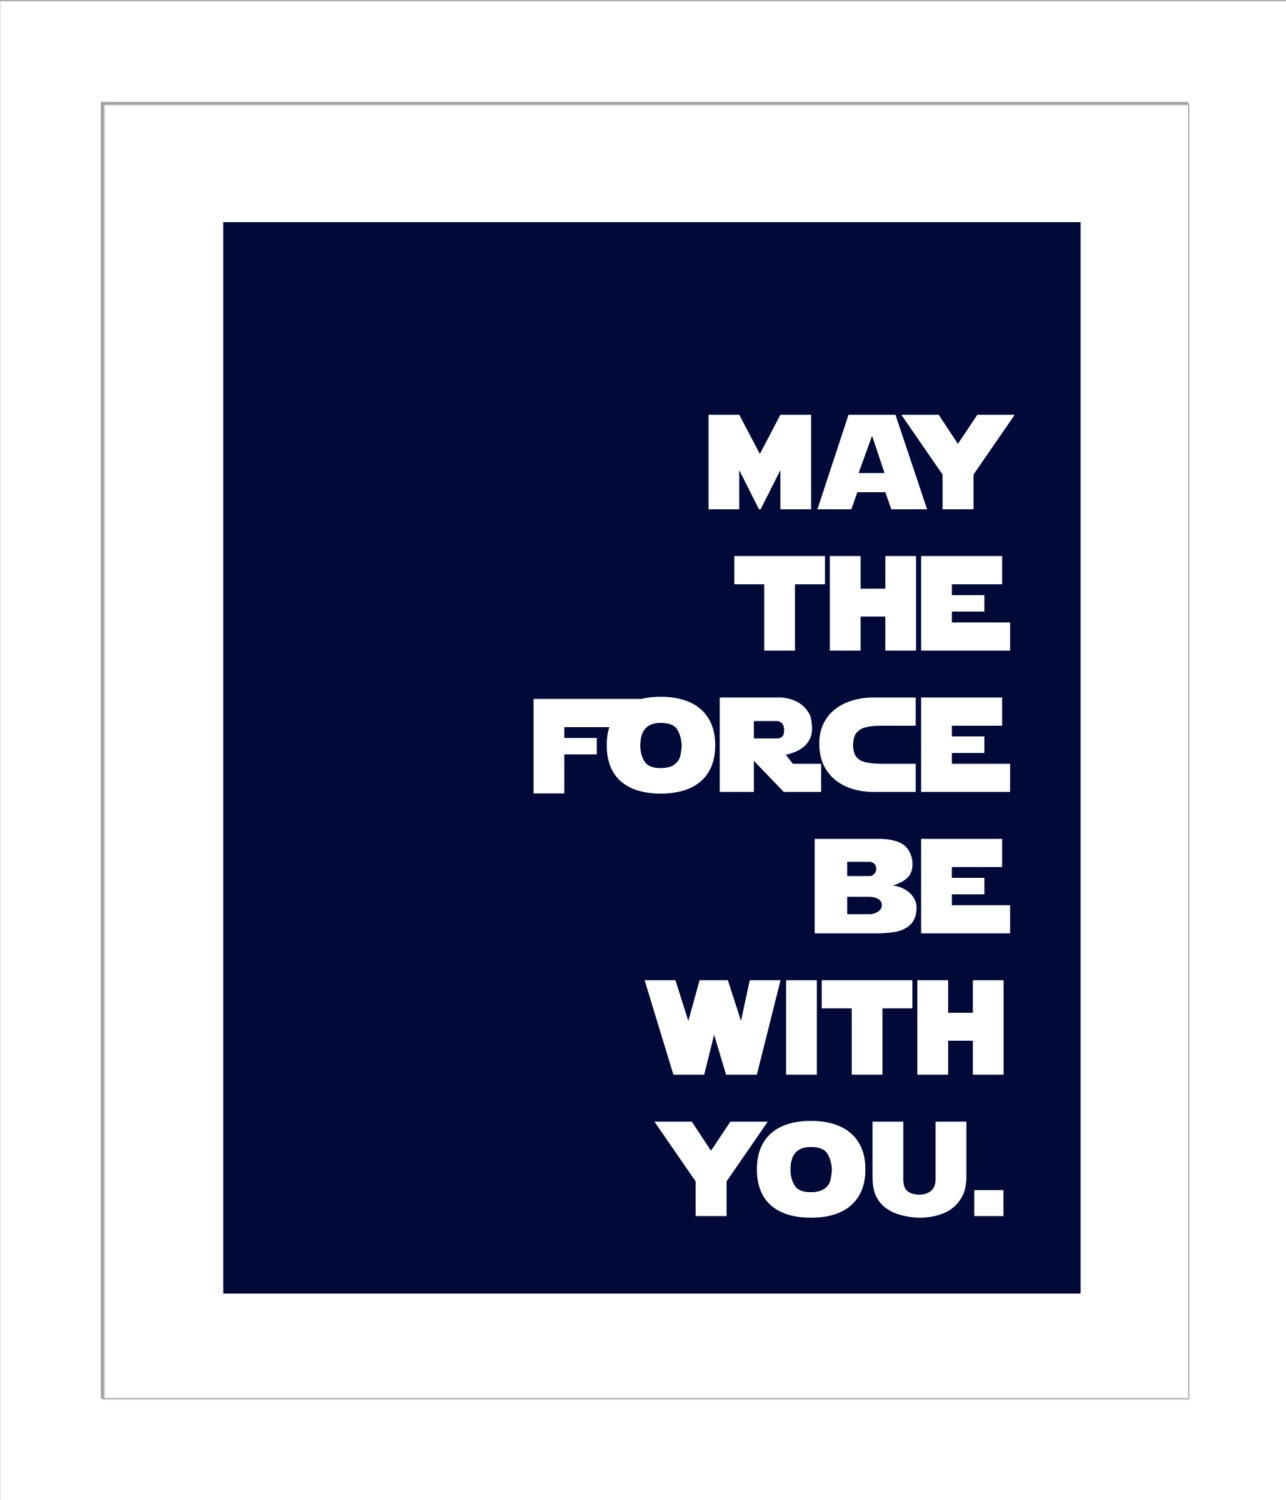 Star Wars Quotes The Force: May The Force Be With You/Obi Wan Kenobi Quote/Star Wars